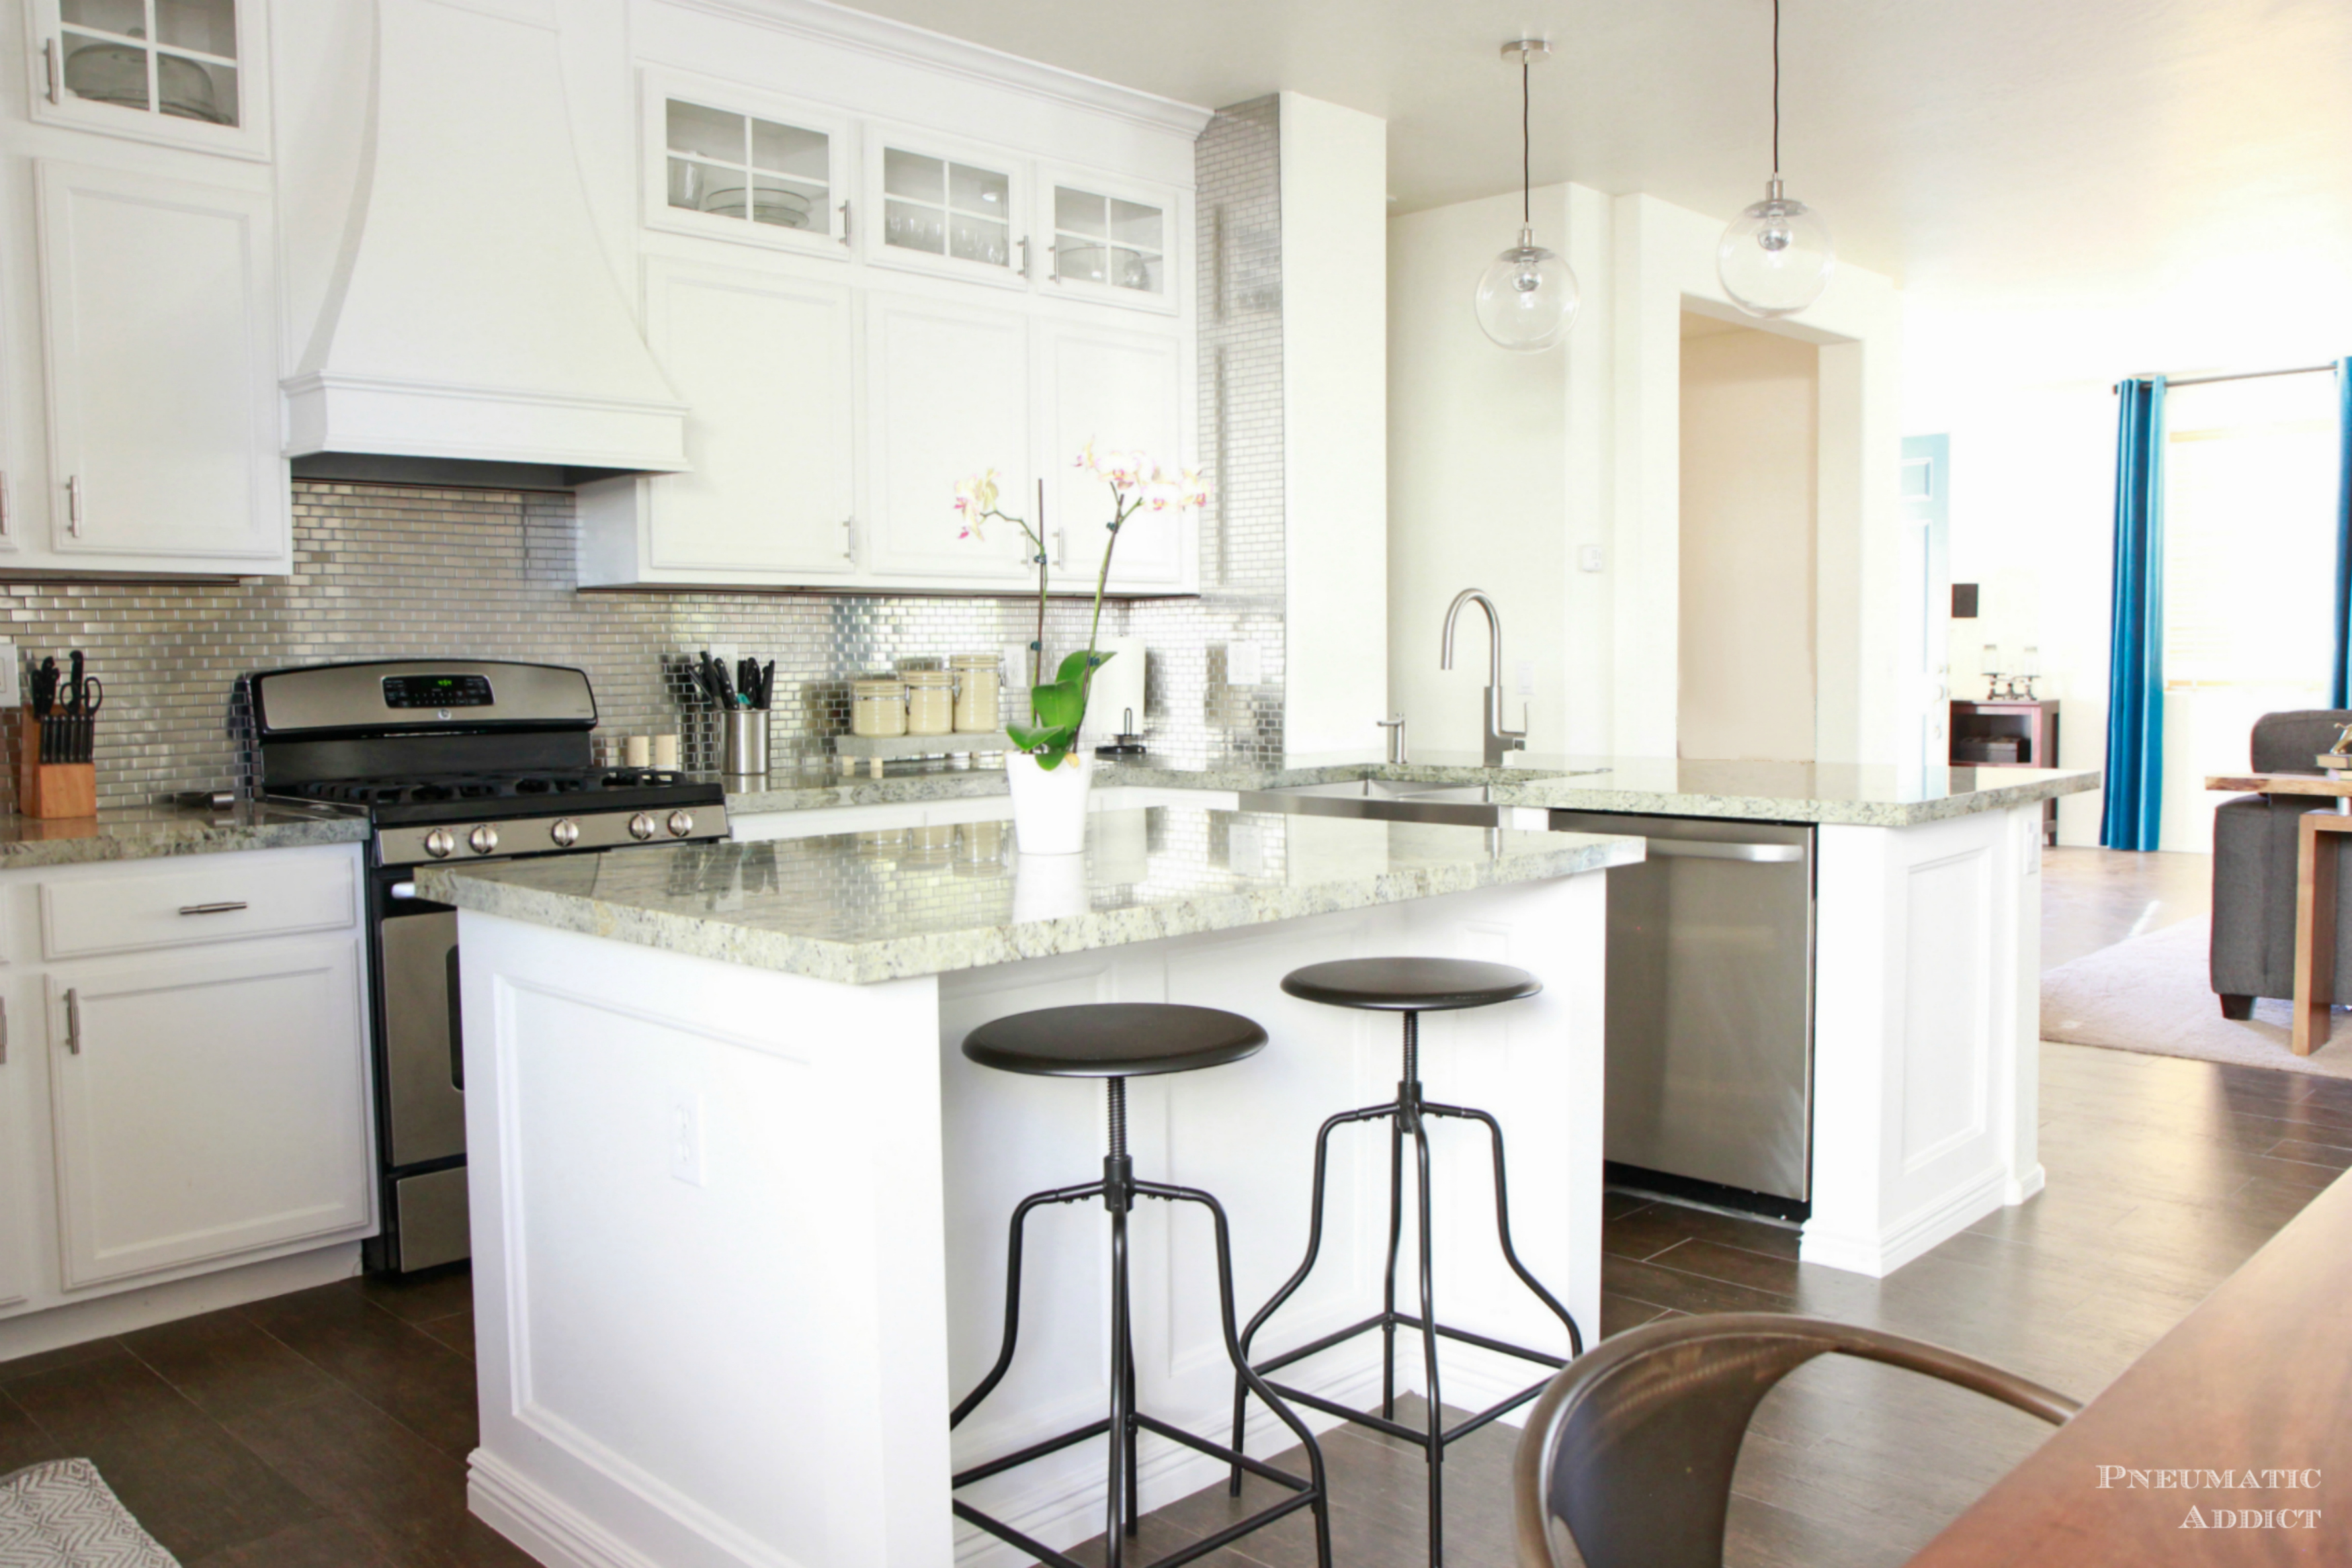 11 best white kitchen cabinets - design ideas for white cabinets MSCWKSG